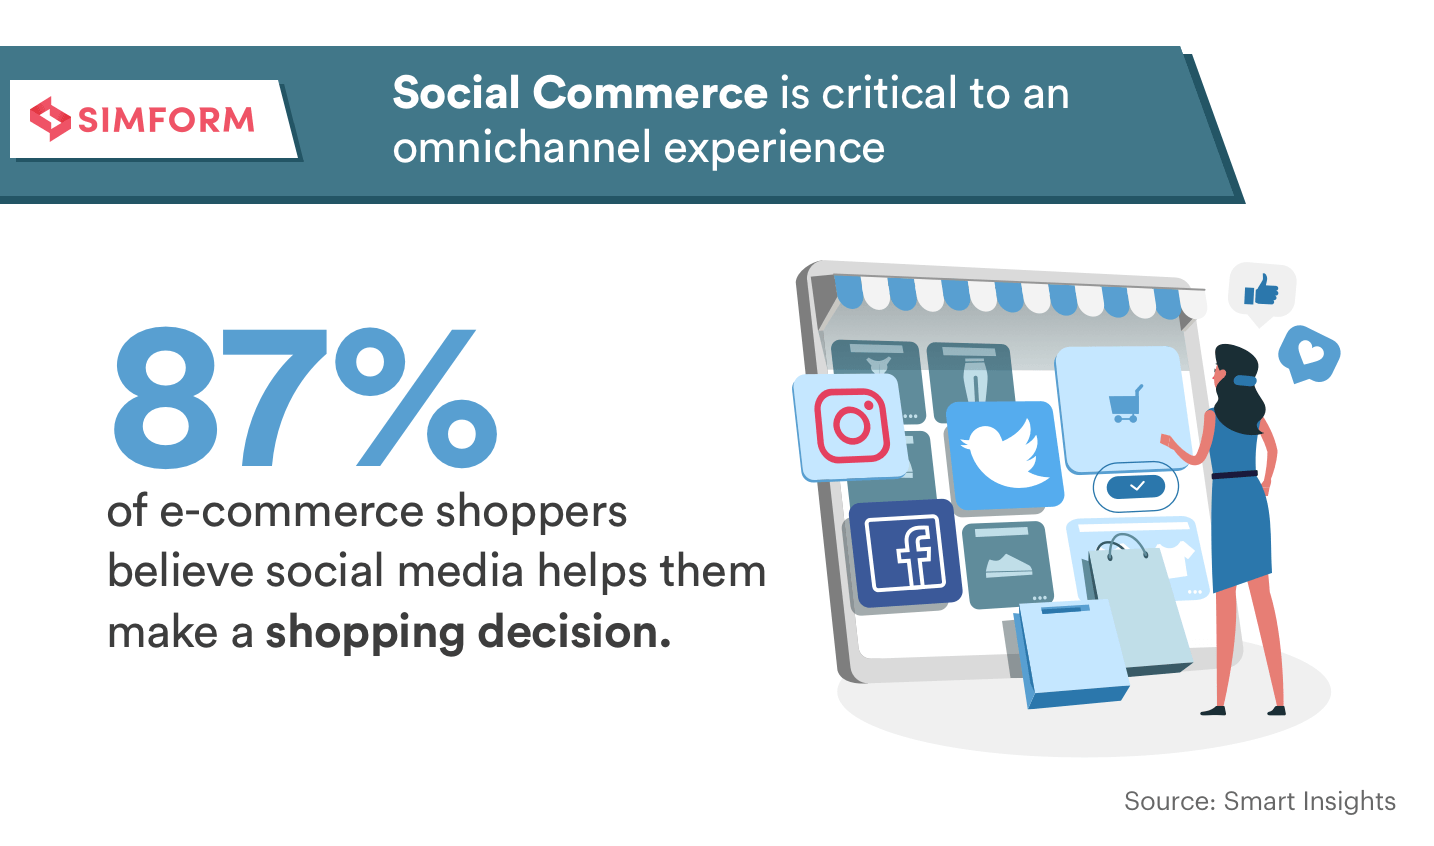 Social commerce is critical to an omnichannel experience